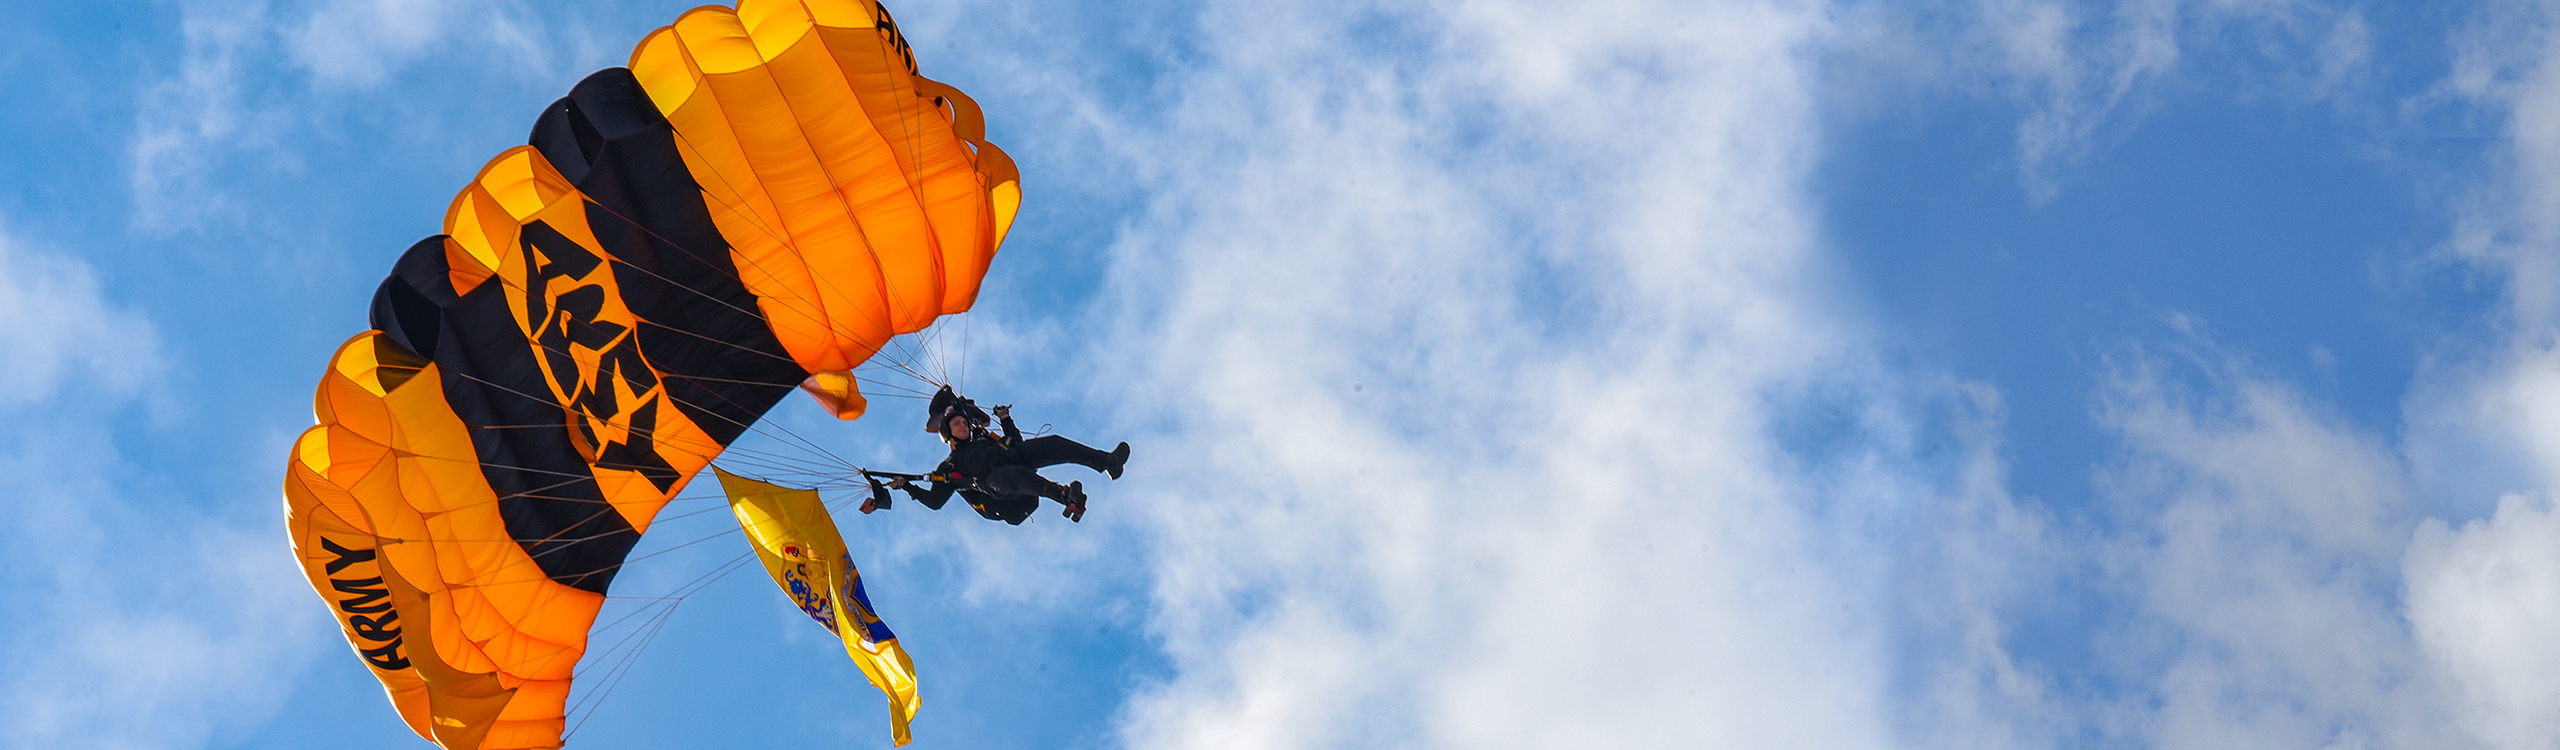 Army parachutist seen in the sky with a New Jersey Flag hanging from ropes